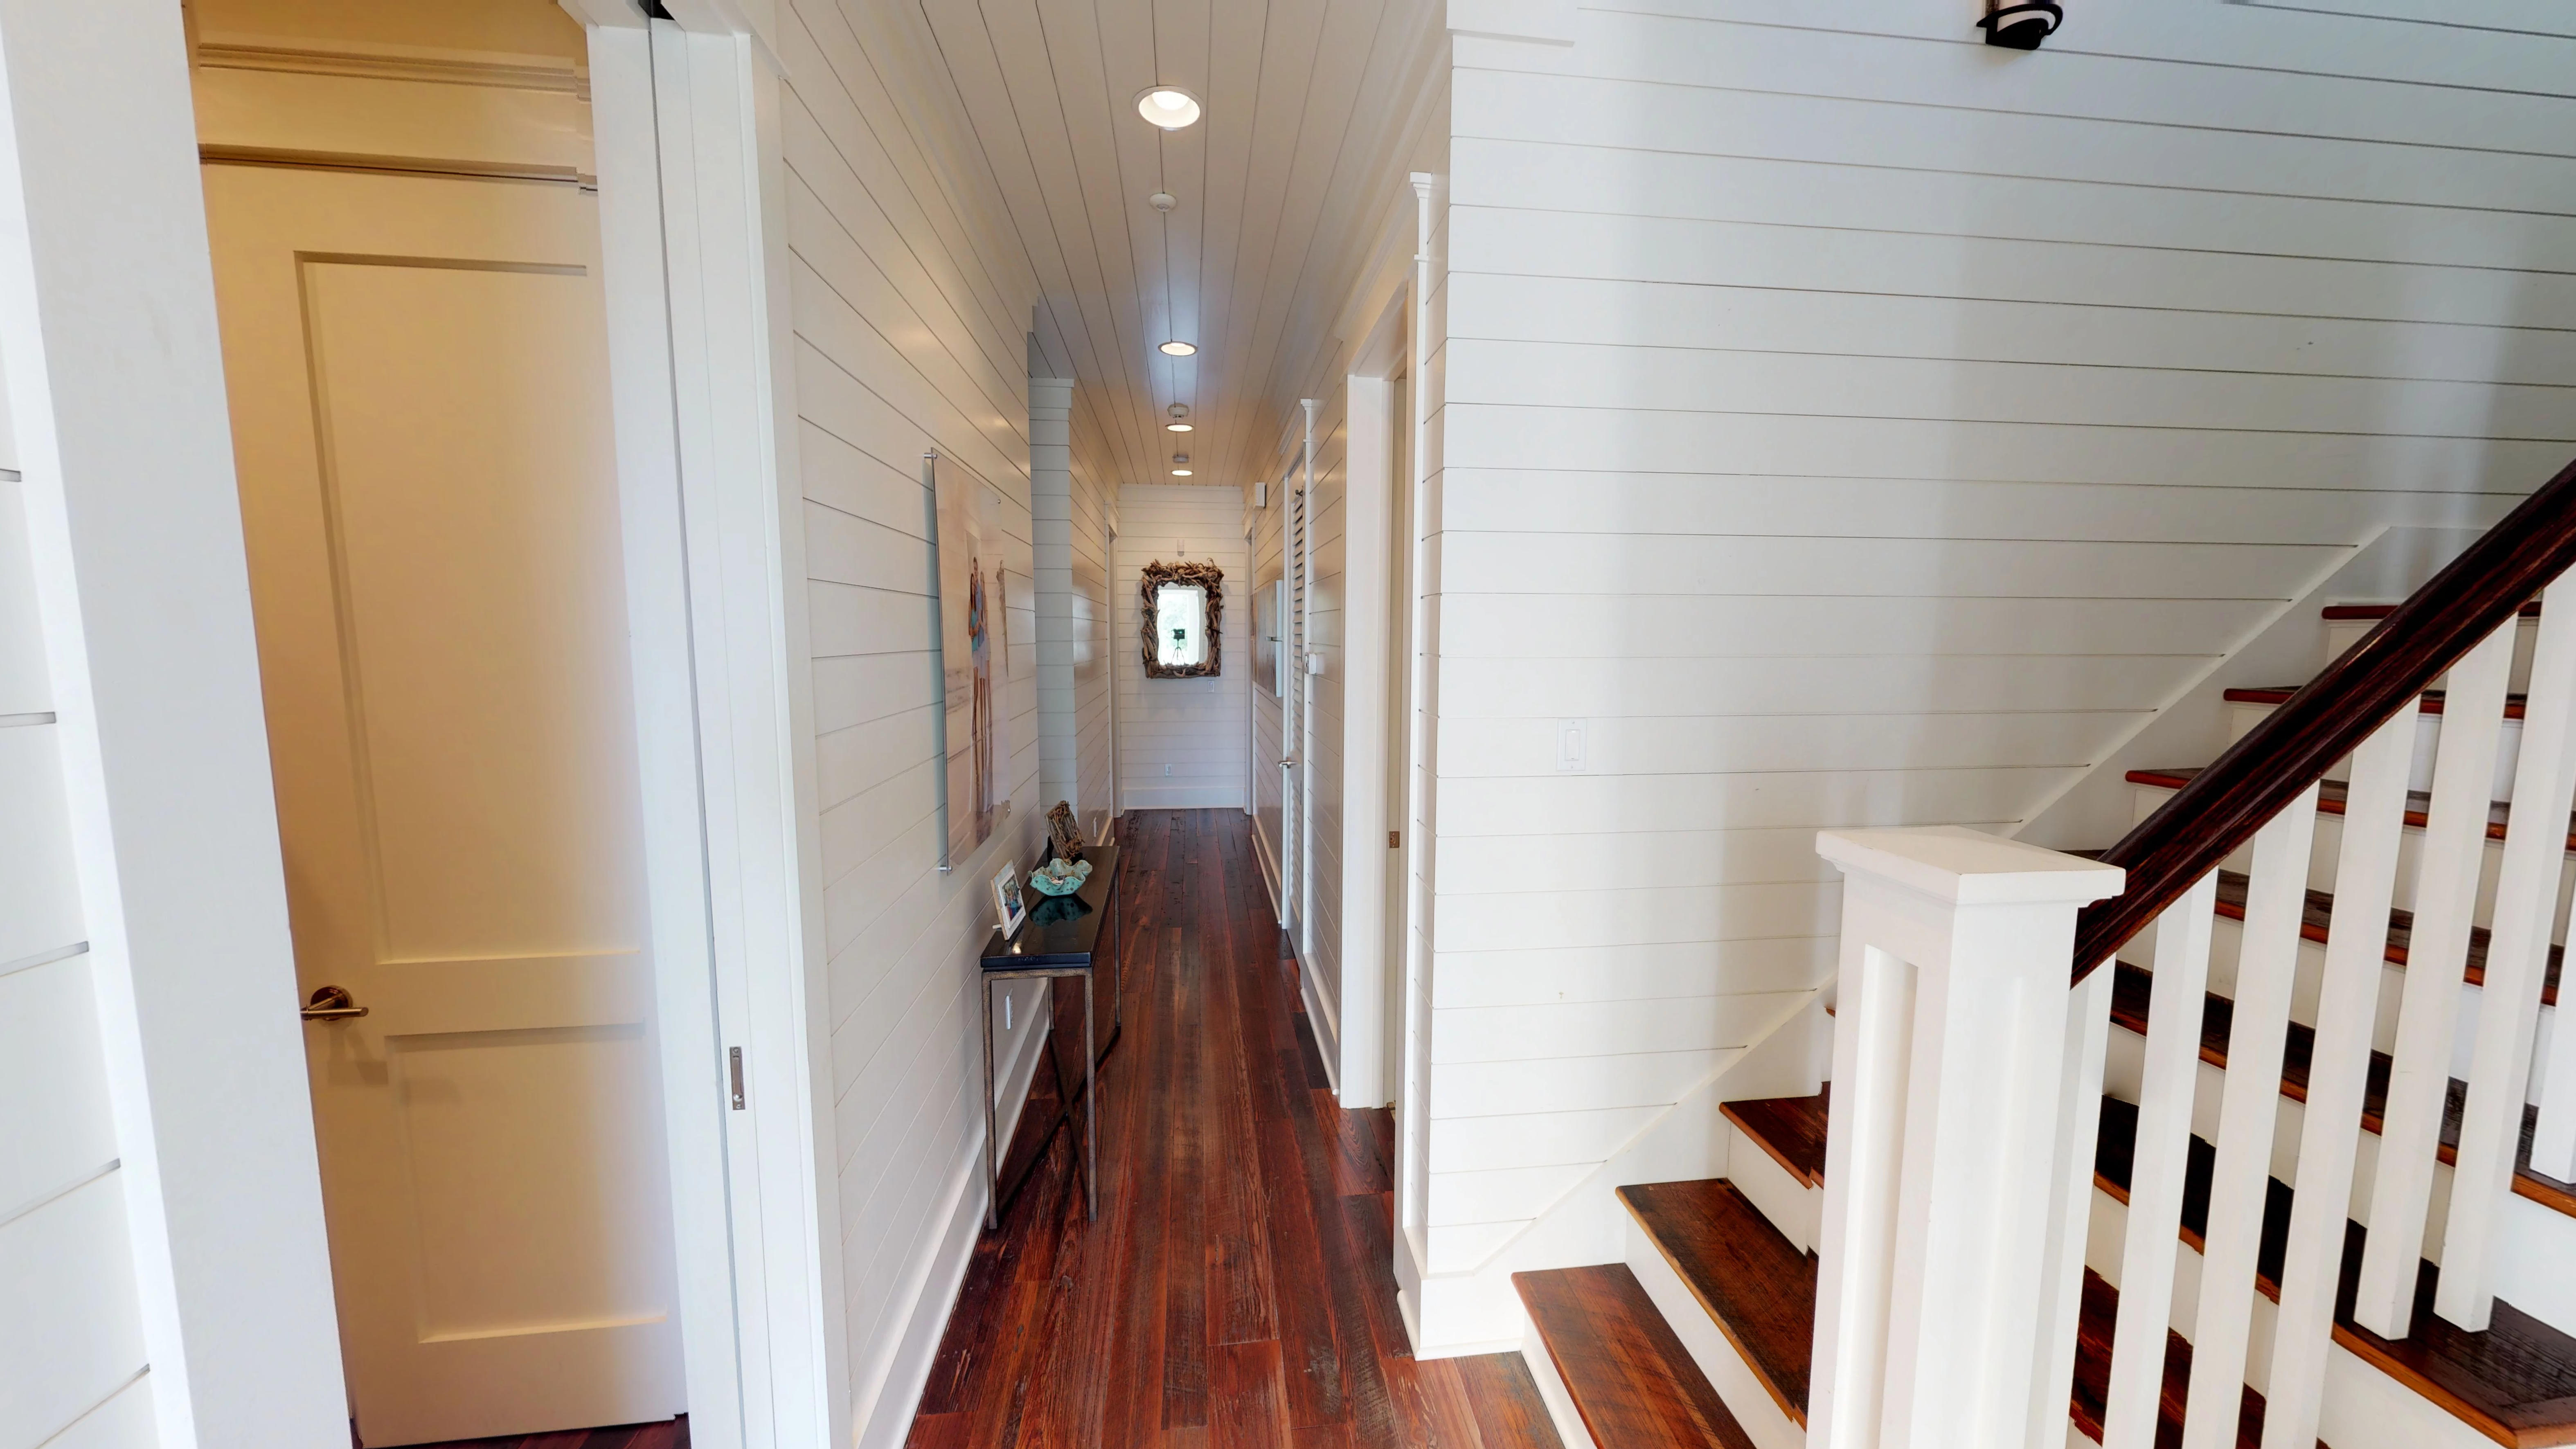 Lovely entrance with a deep hallway leading to 3 bedrooms